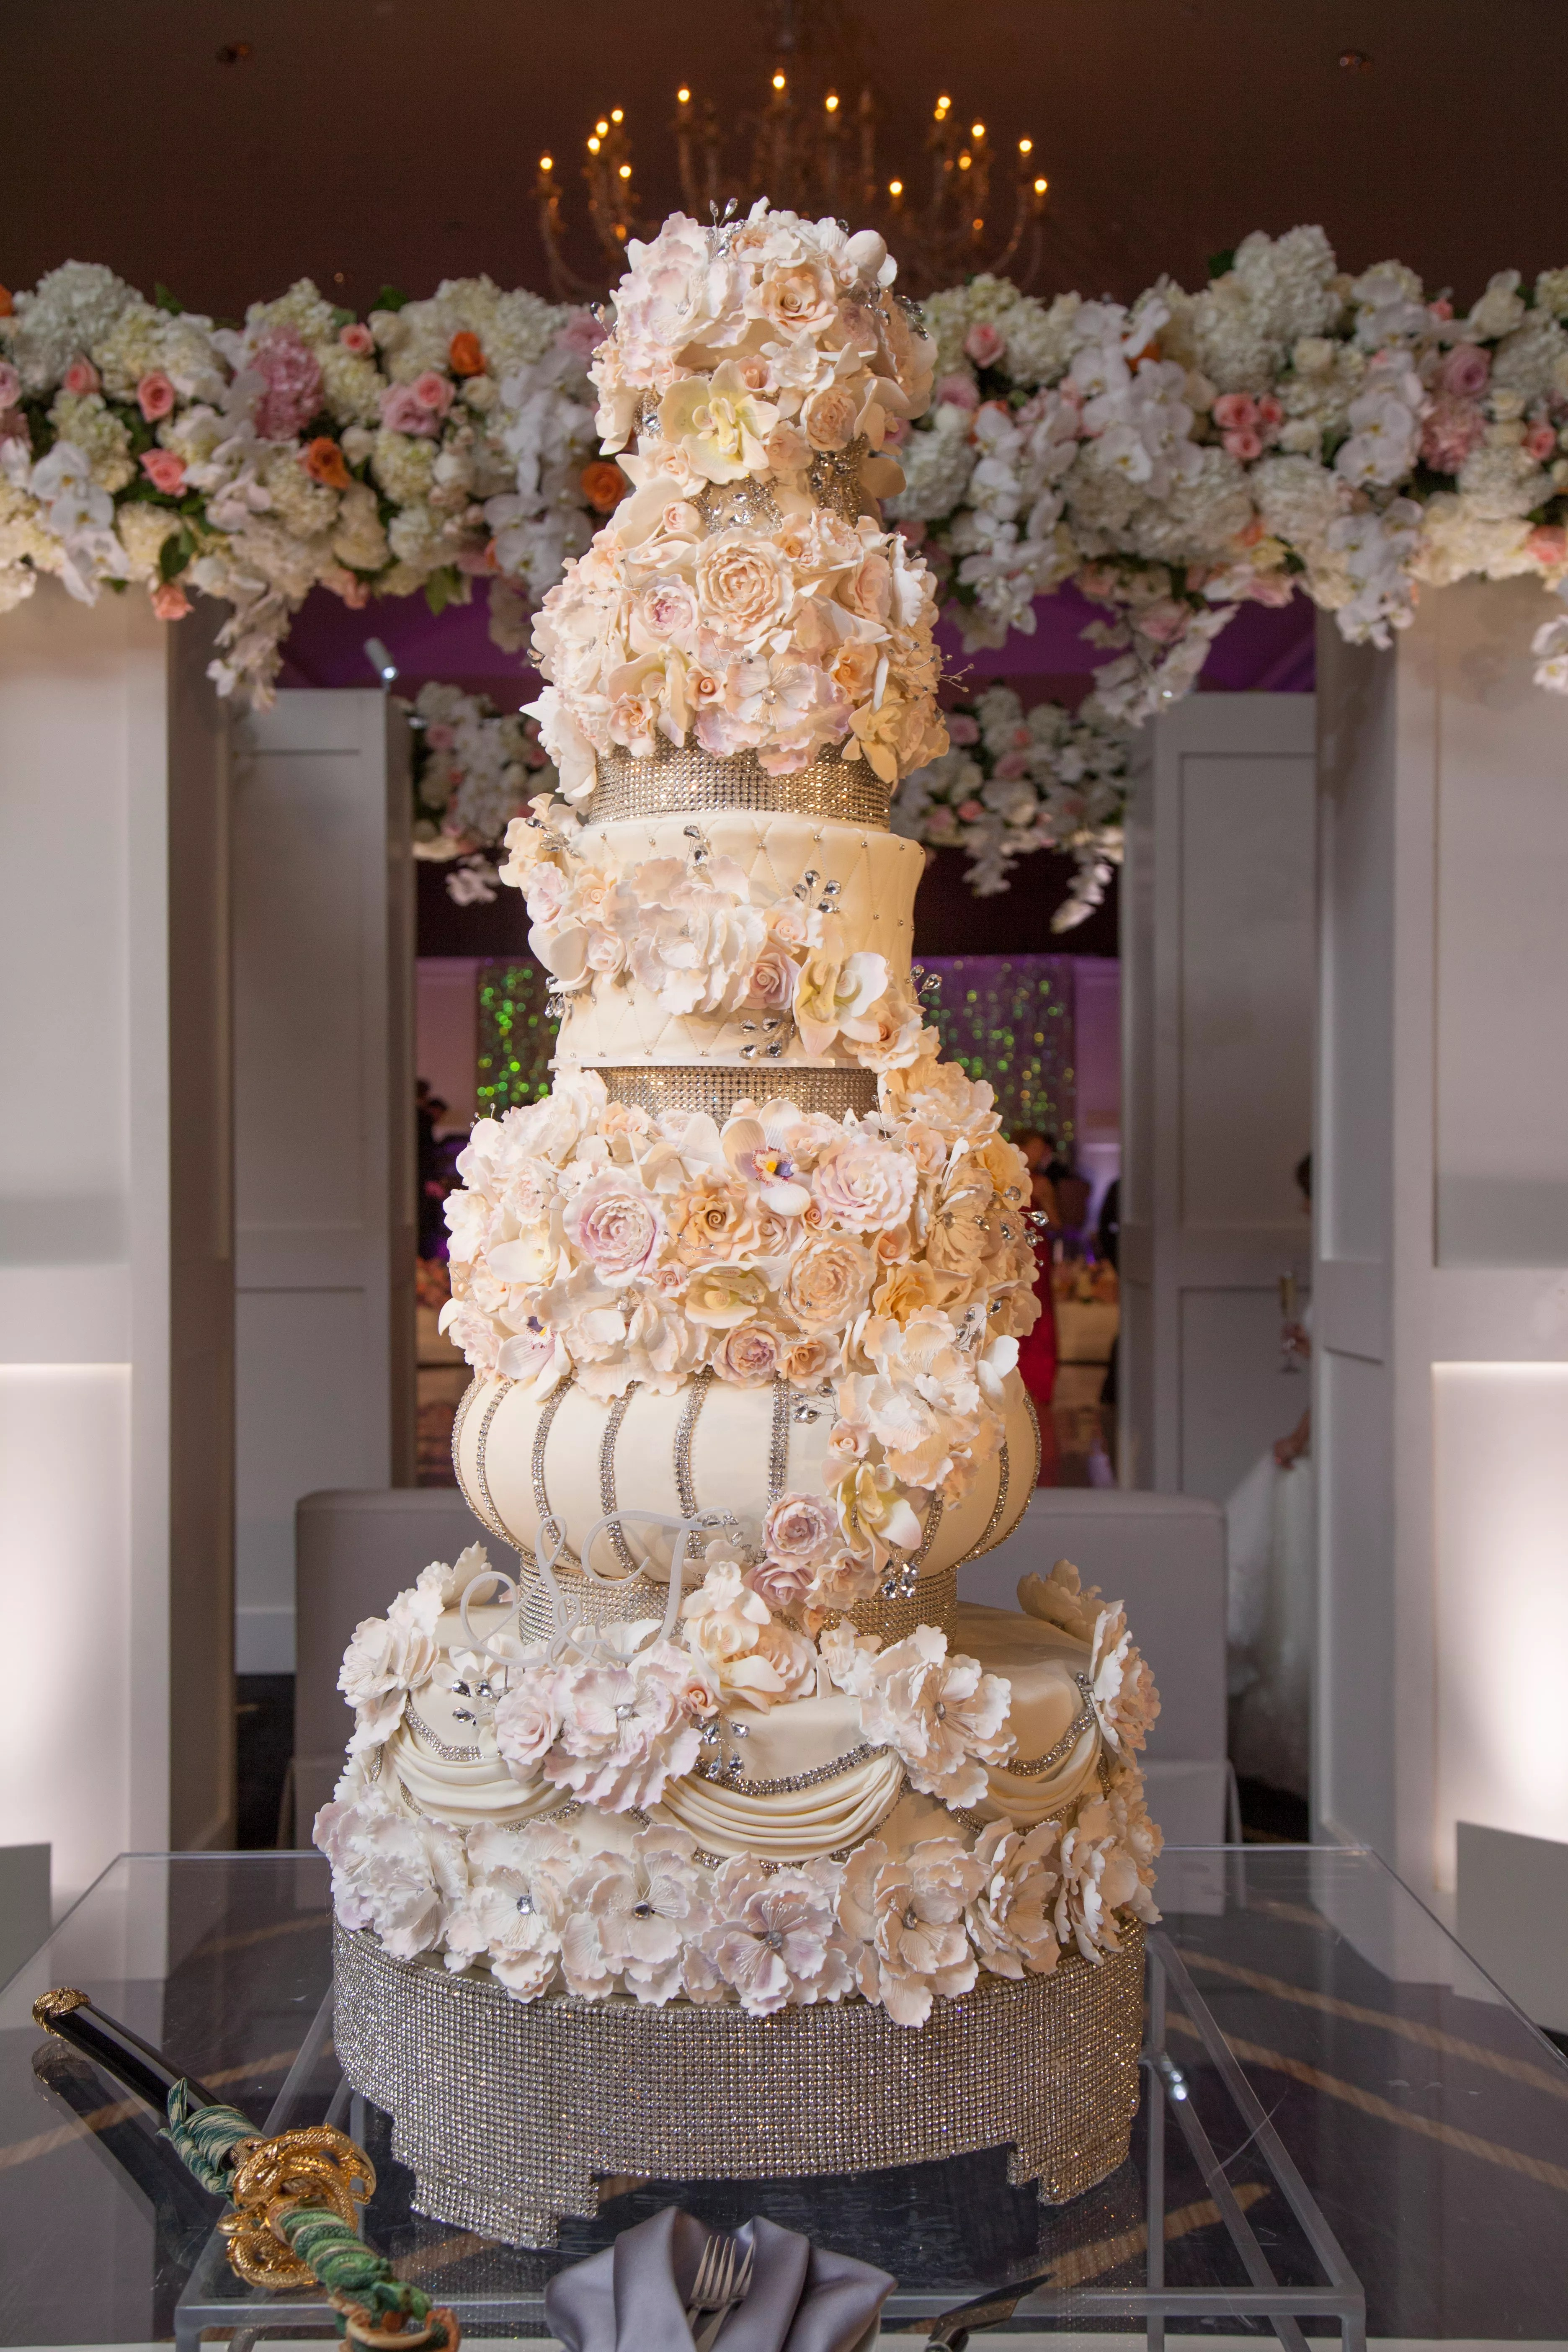 Who Made The Cake Exquisite Cakes by Nadine Moon